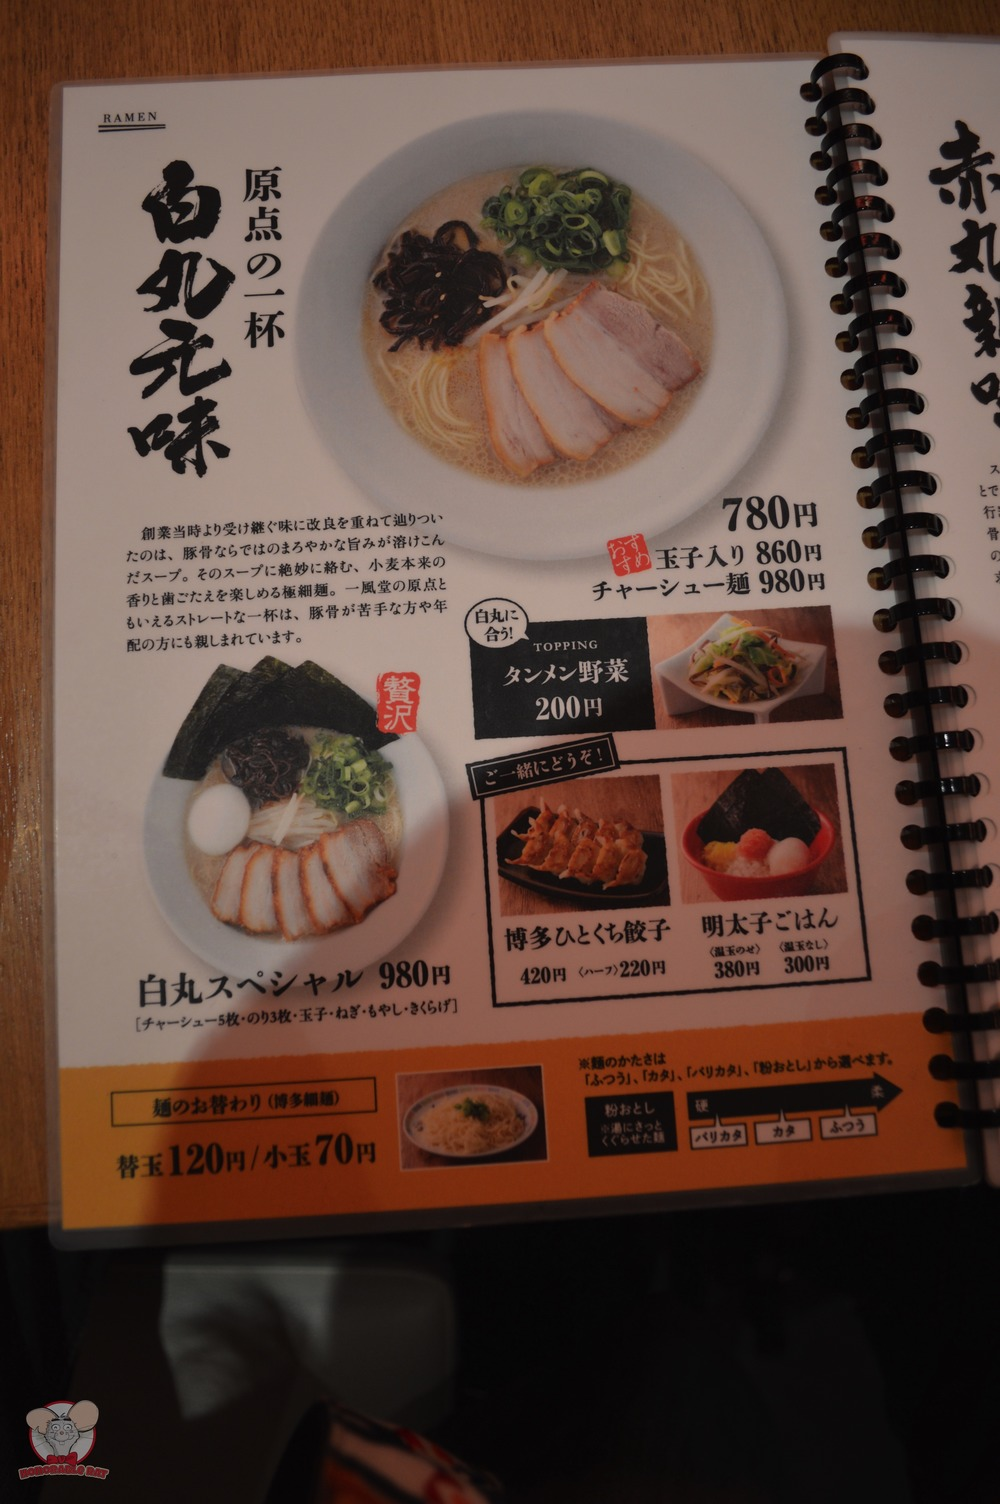 Shiromaru: 780 yen for a basic bowl (leek, sliced mushrooms and bean sprouts)                     860 yen for a basic bowl with an egg                     980 yen for a basic bowl with char siew                     980 yen for the special (basic bowl plus char siew, an egg and seaweed)